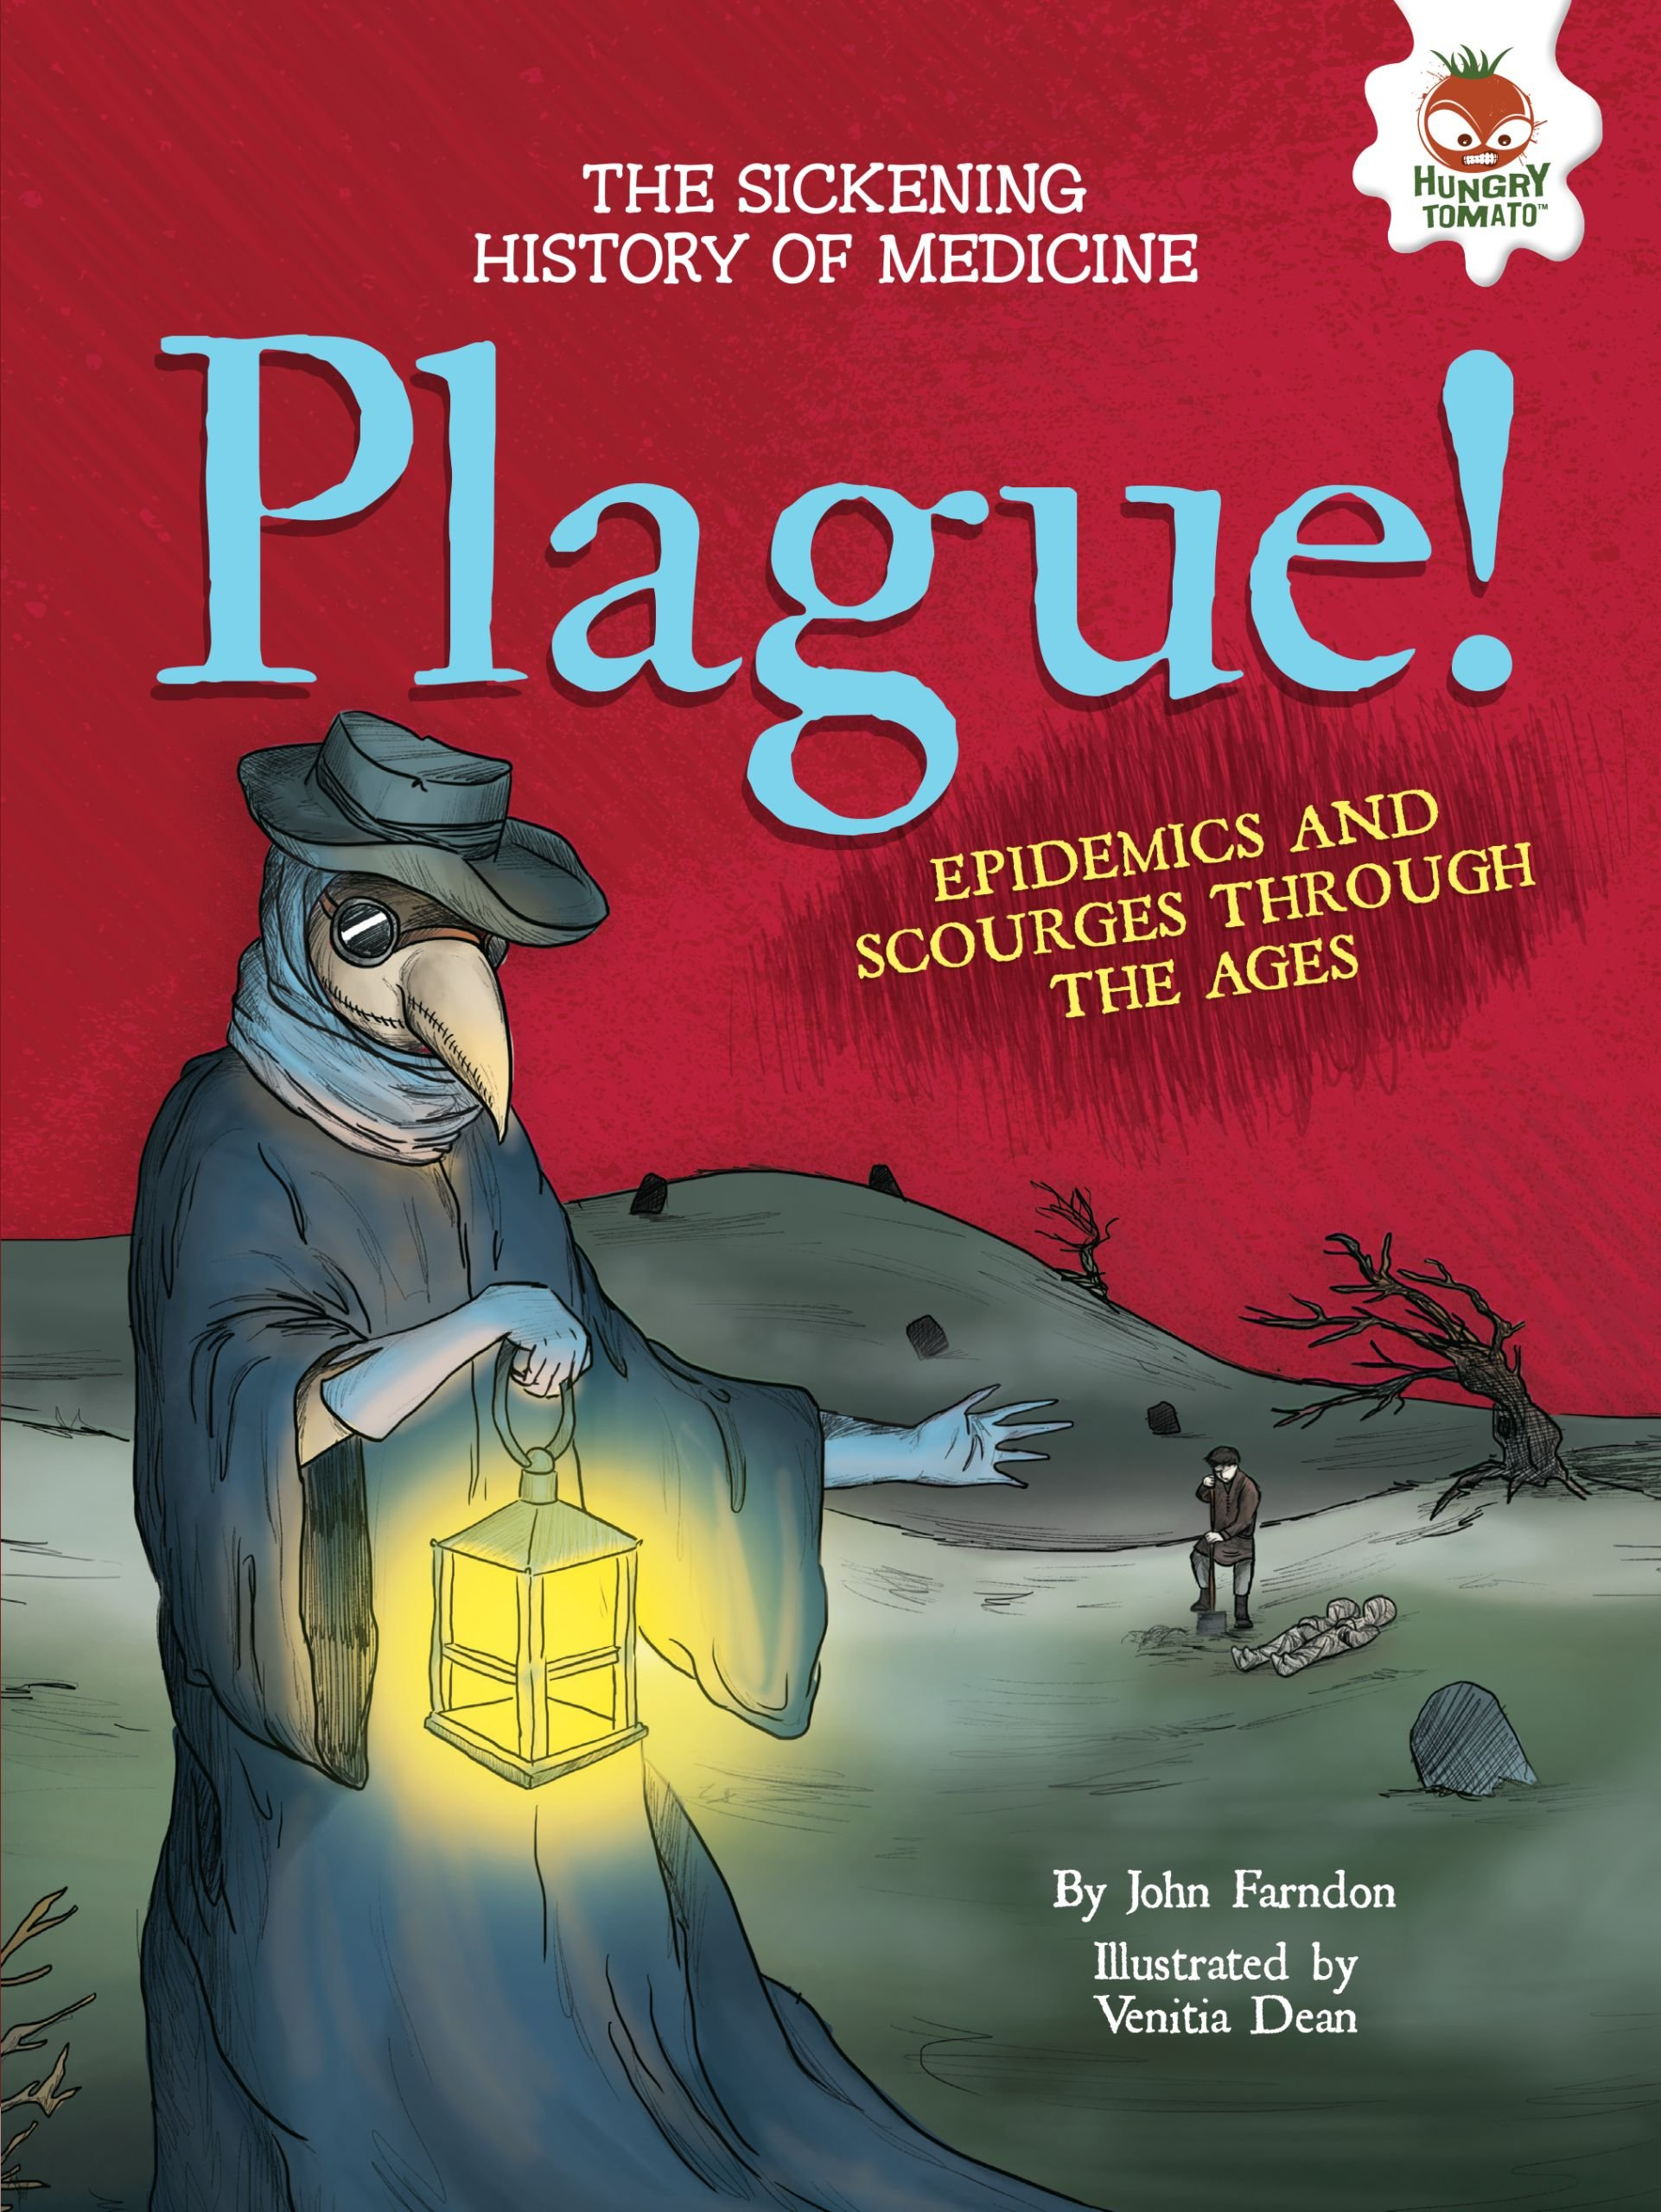 Download Plague!: Epidemics and Scourges Through the Ages (Sickening History of Medicine) pdf epub